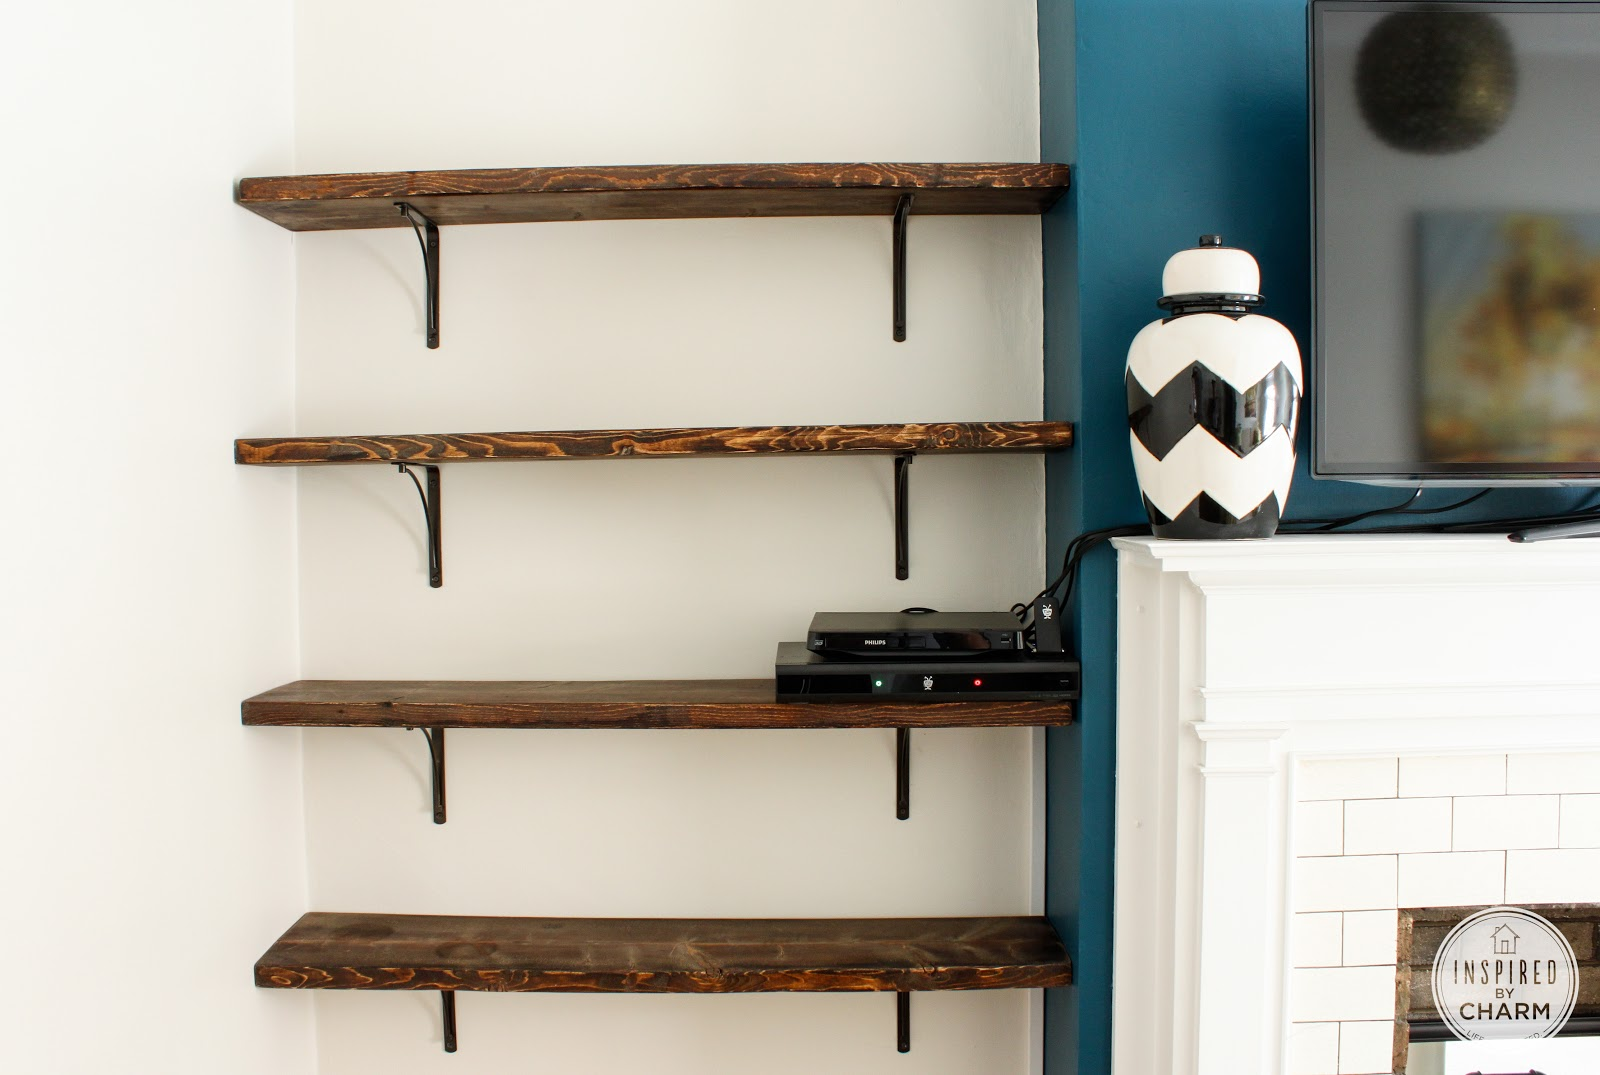 Wall Mounted Bookcase Wood Roselawnlutheran Interiors Inside Ideas Interiors design about Everything [magnanprojects.com]